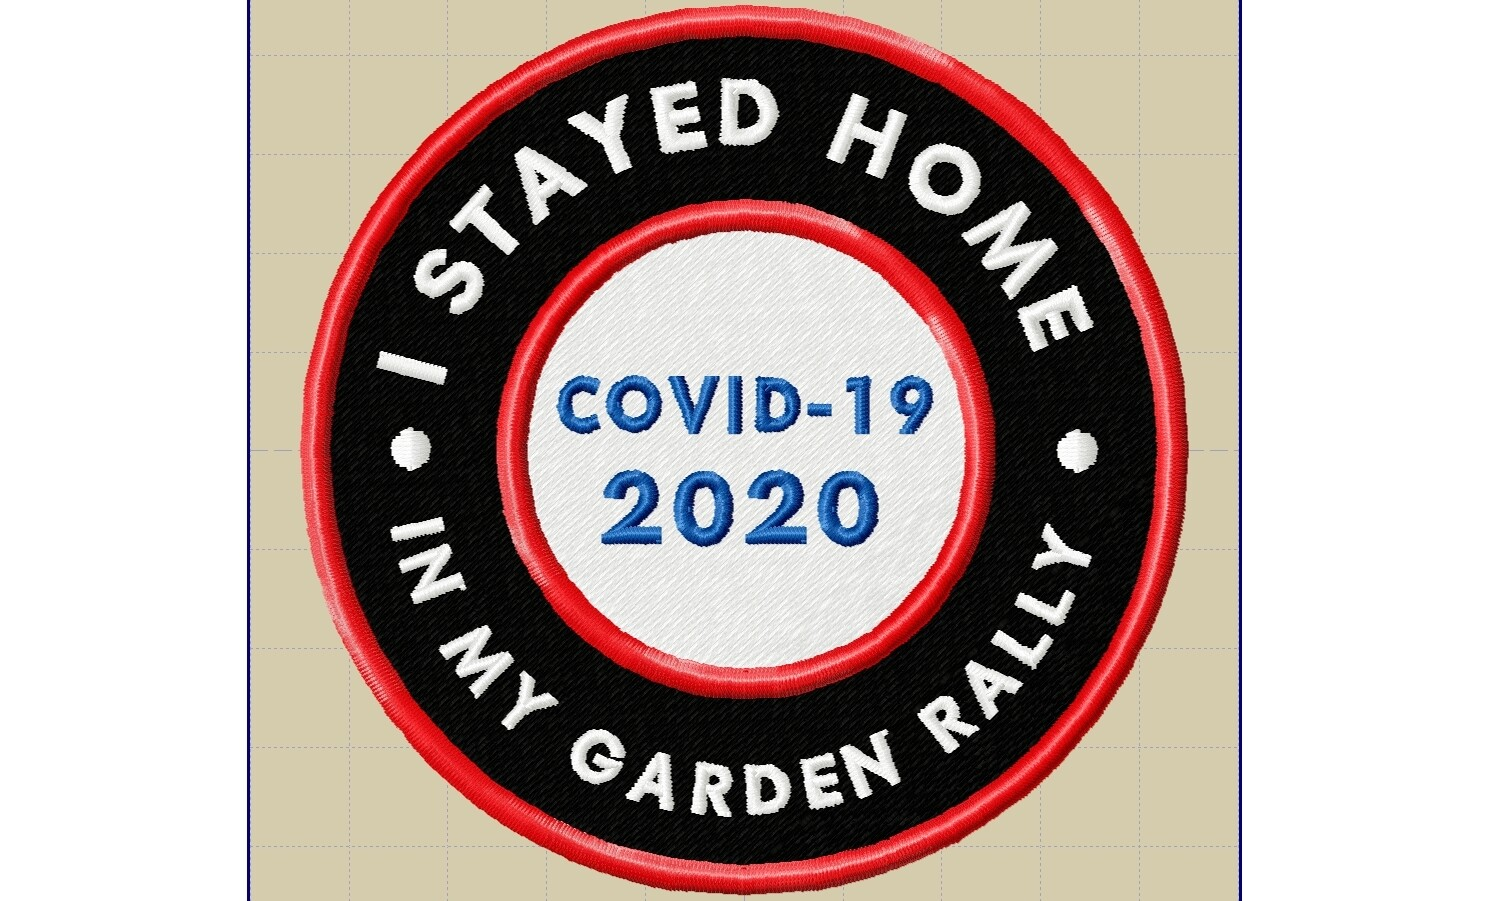 'I Stayed Home In My Garden Rally' Embroidered Patch